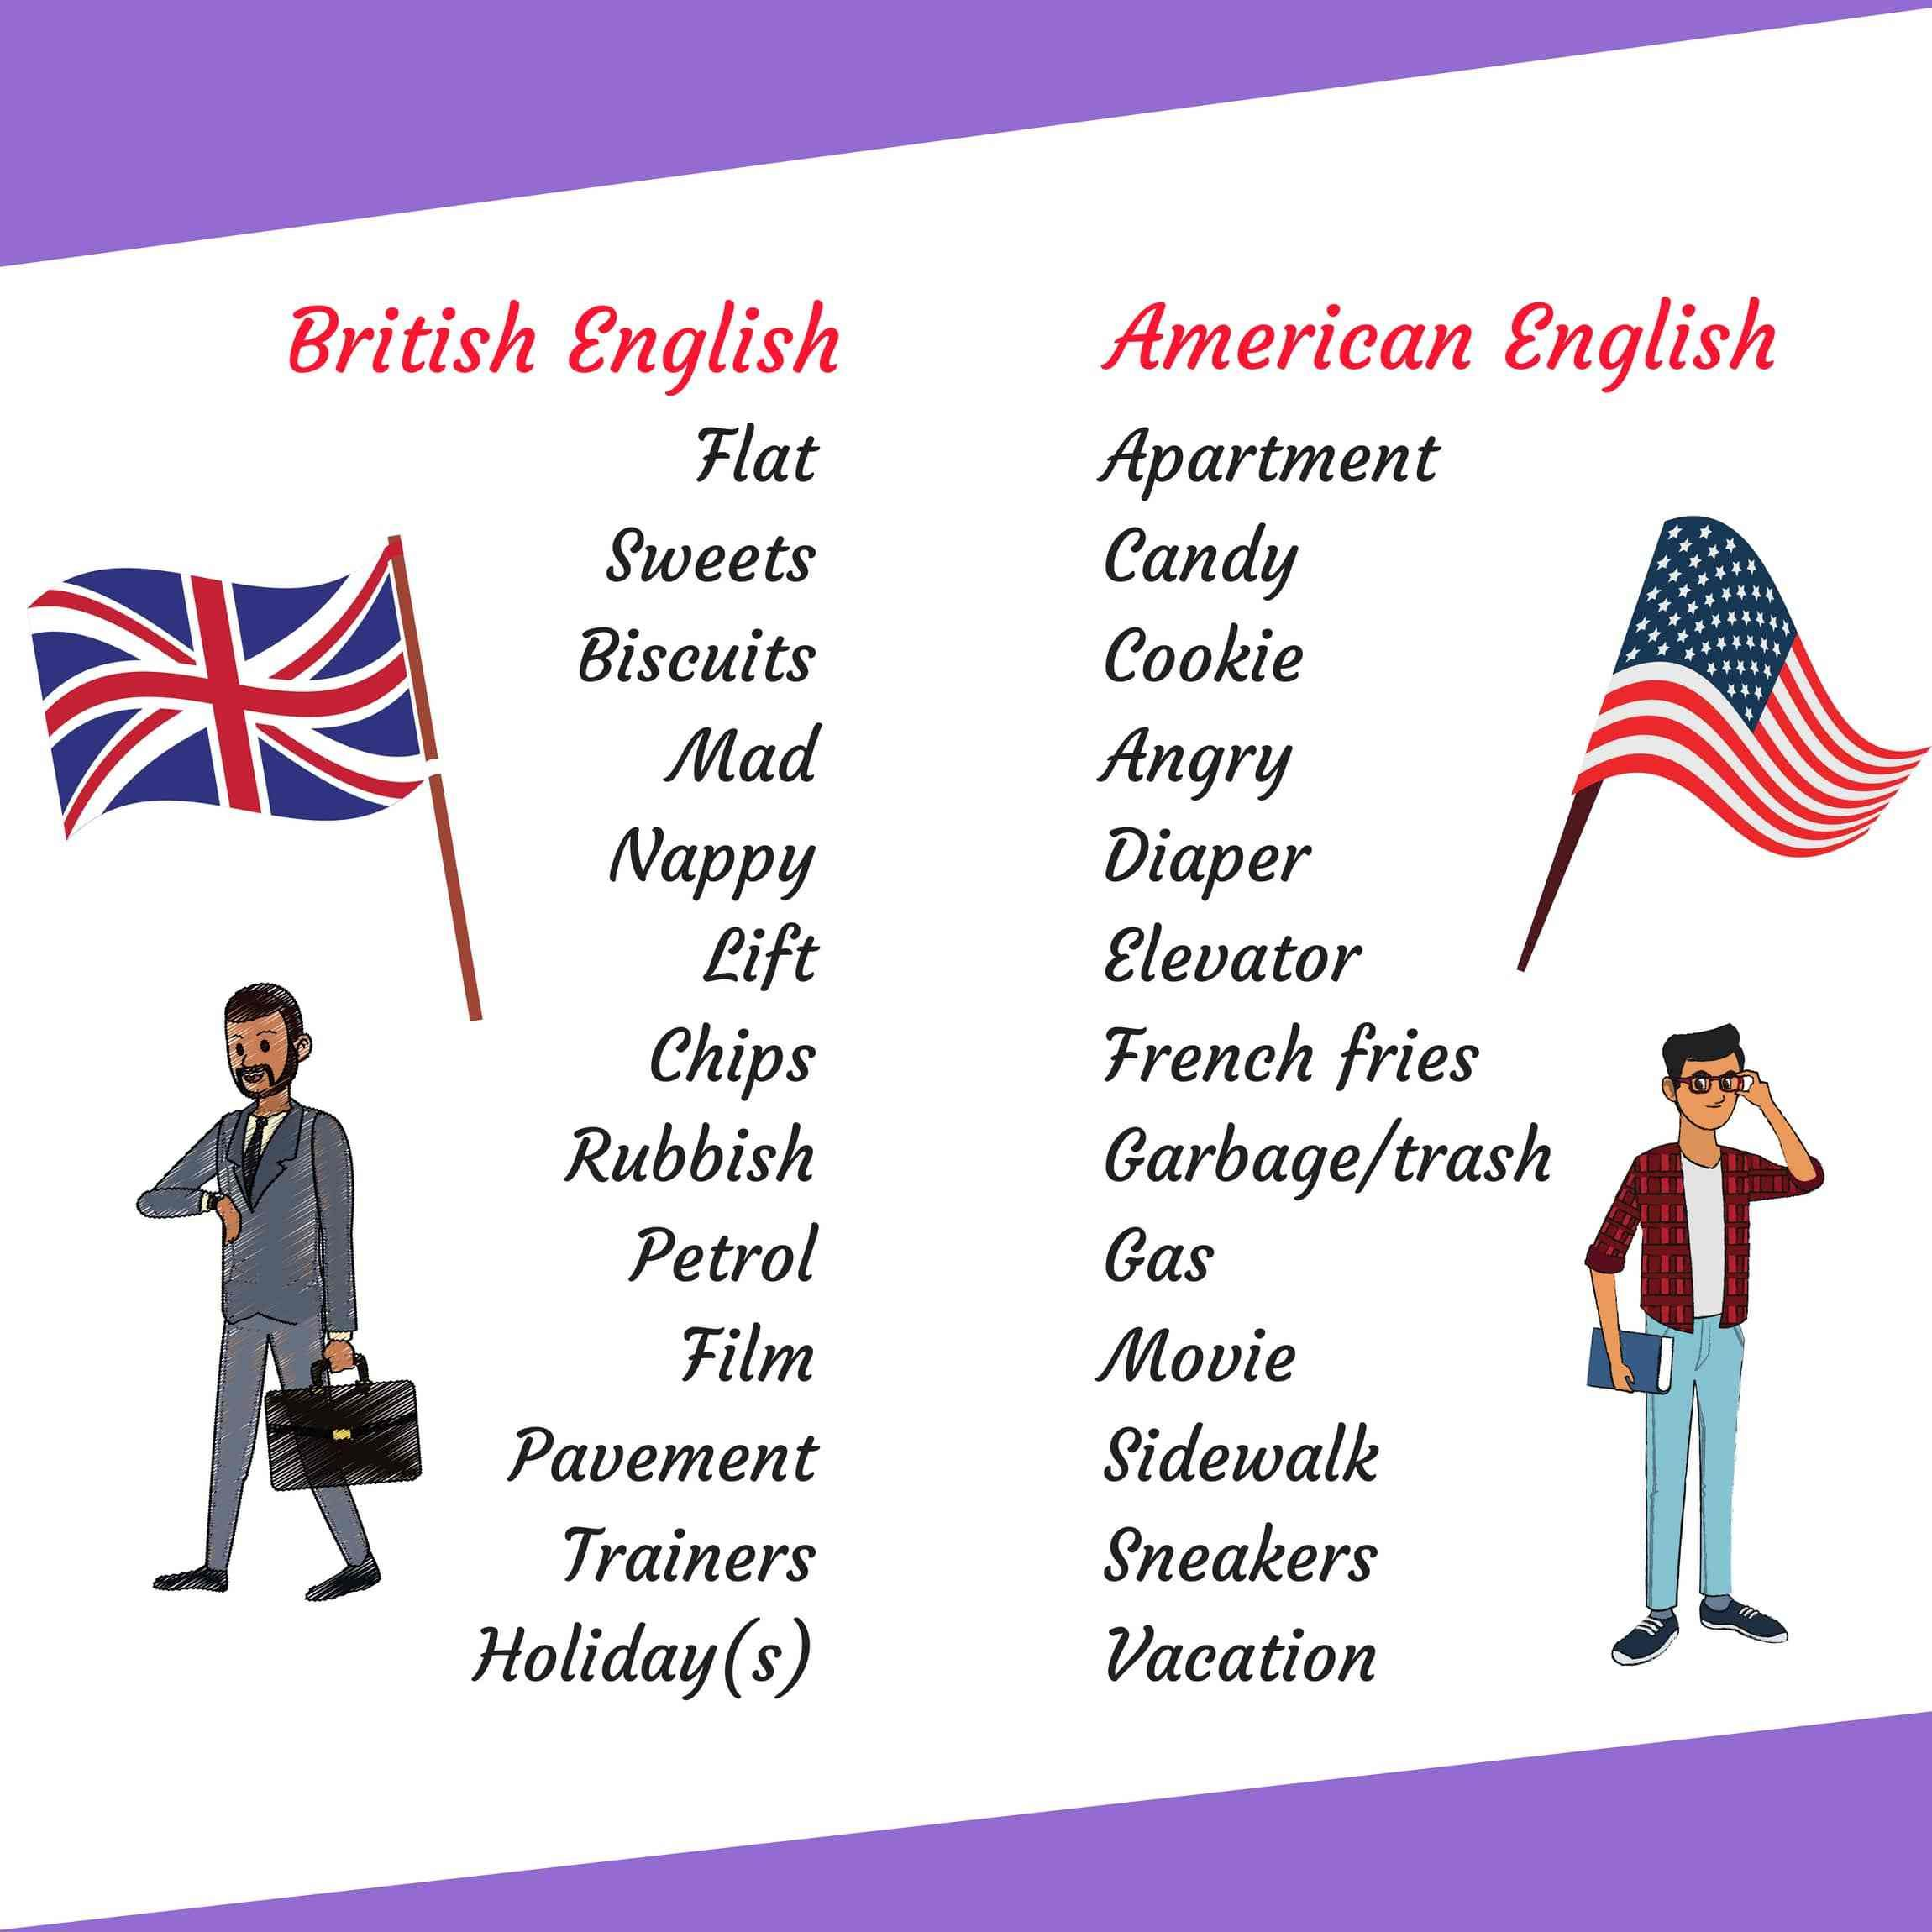 What Are The Differences Between British And American